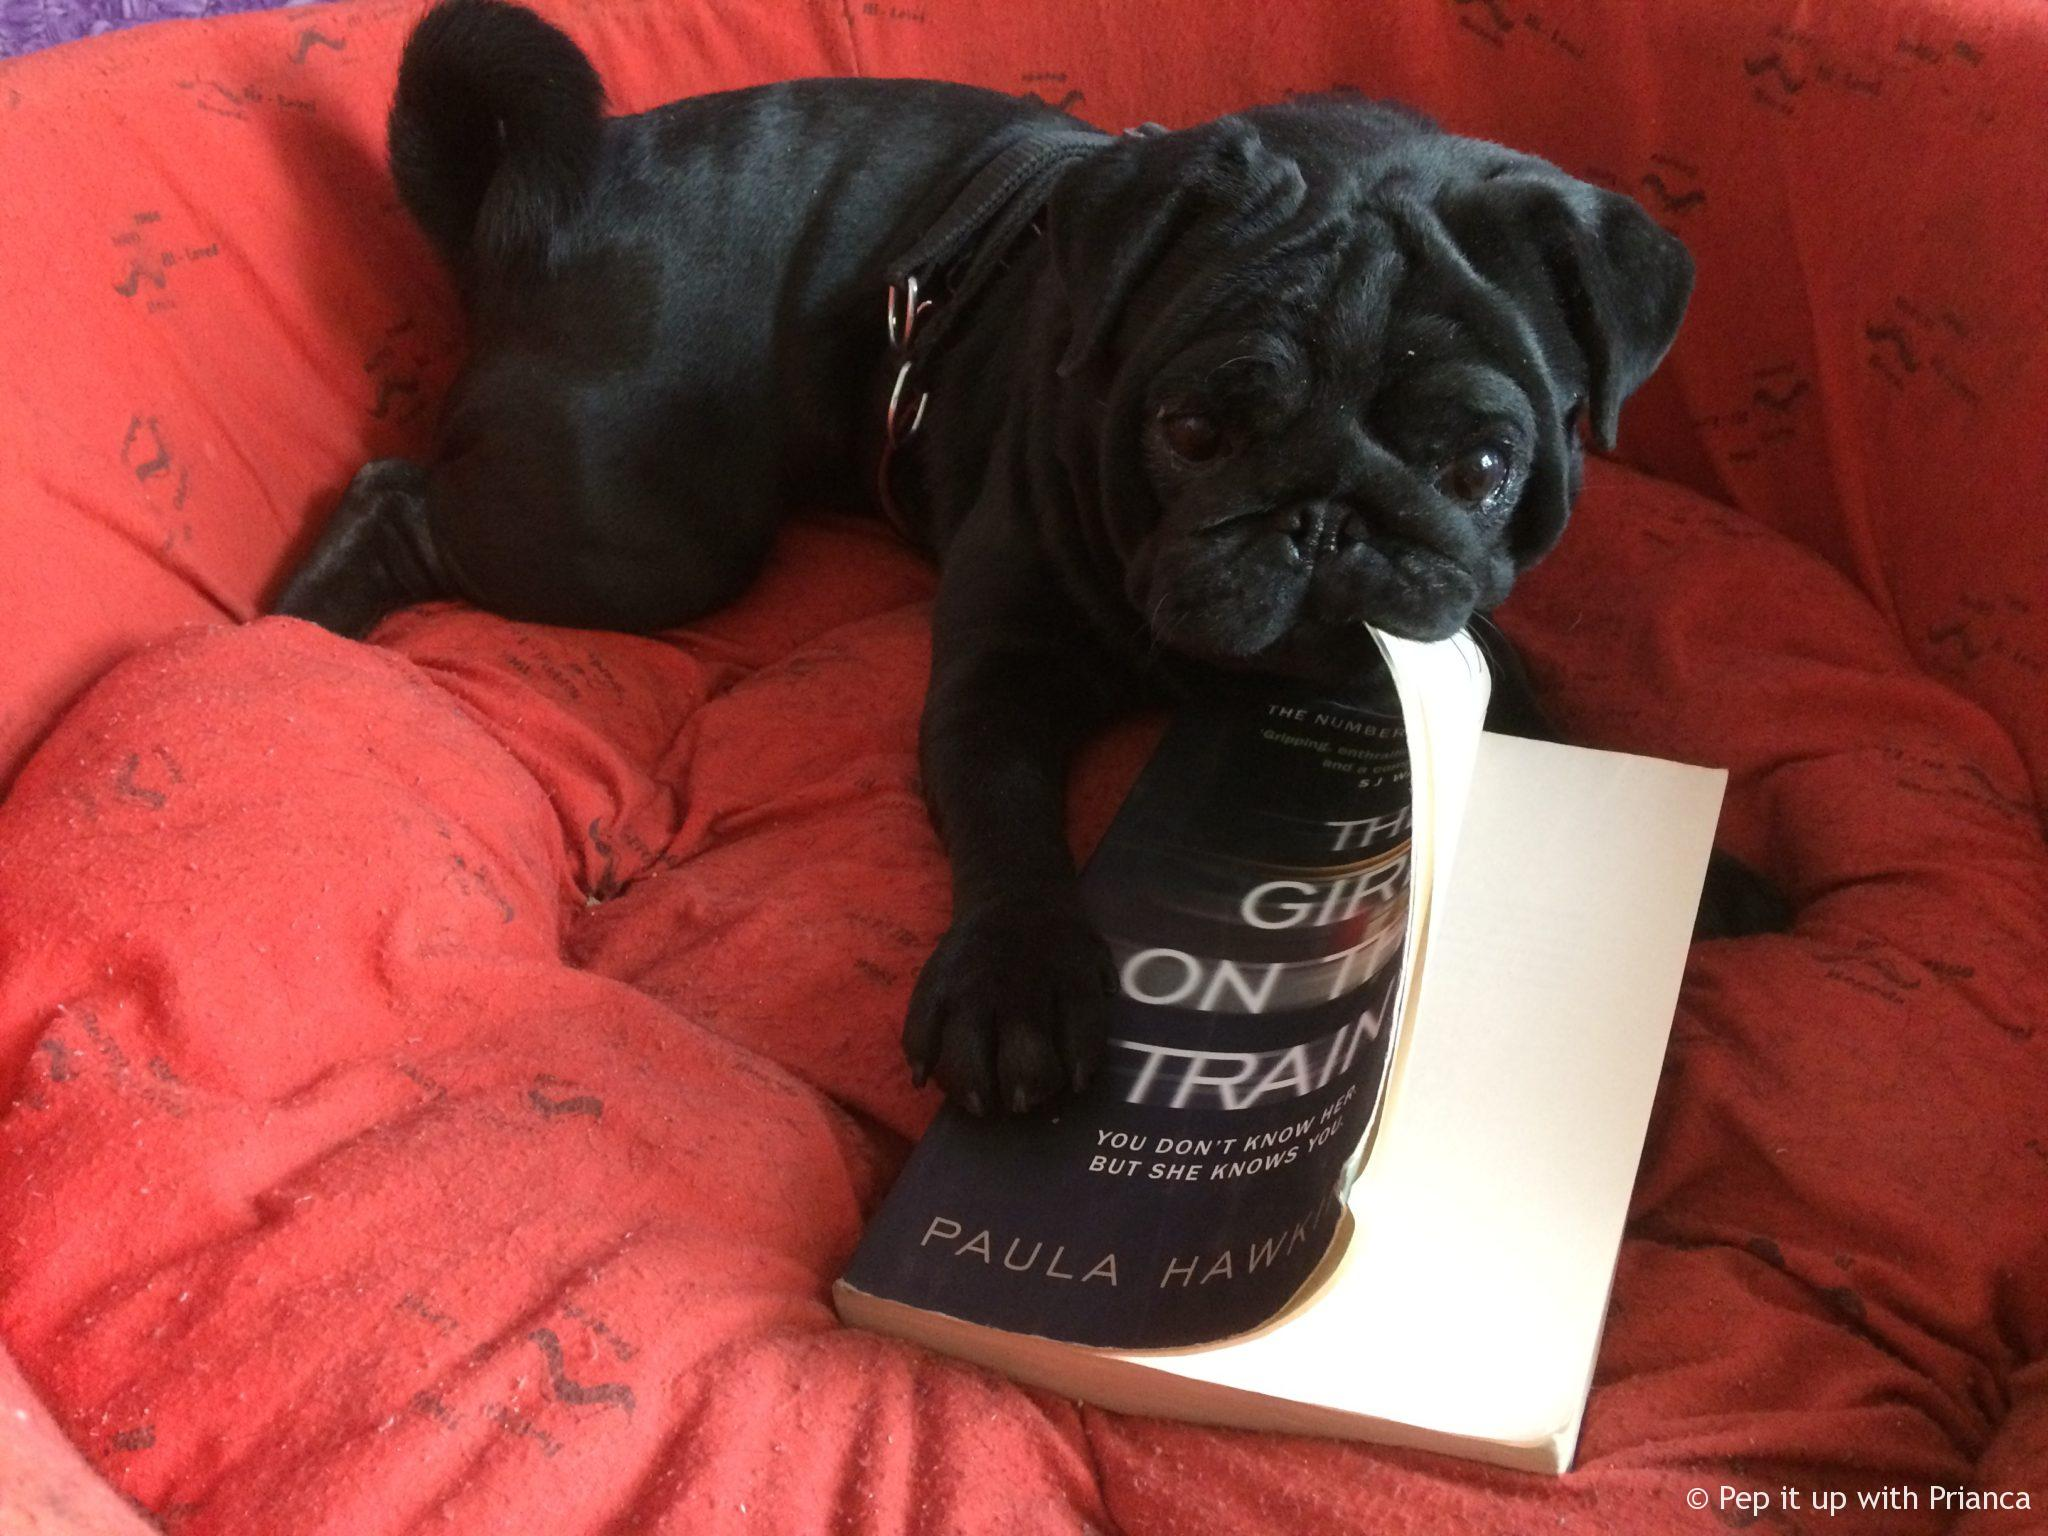 672 - Life's a Pooch - A Day in the Life of a 'Black' Pug!